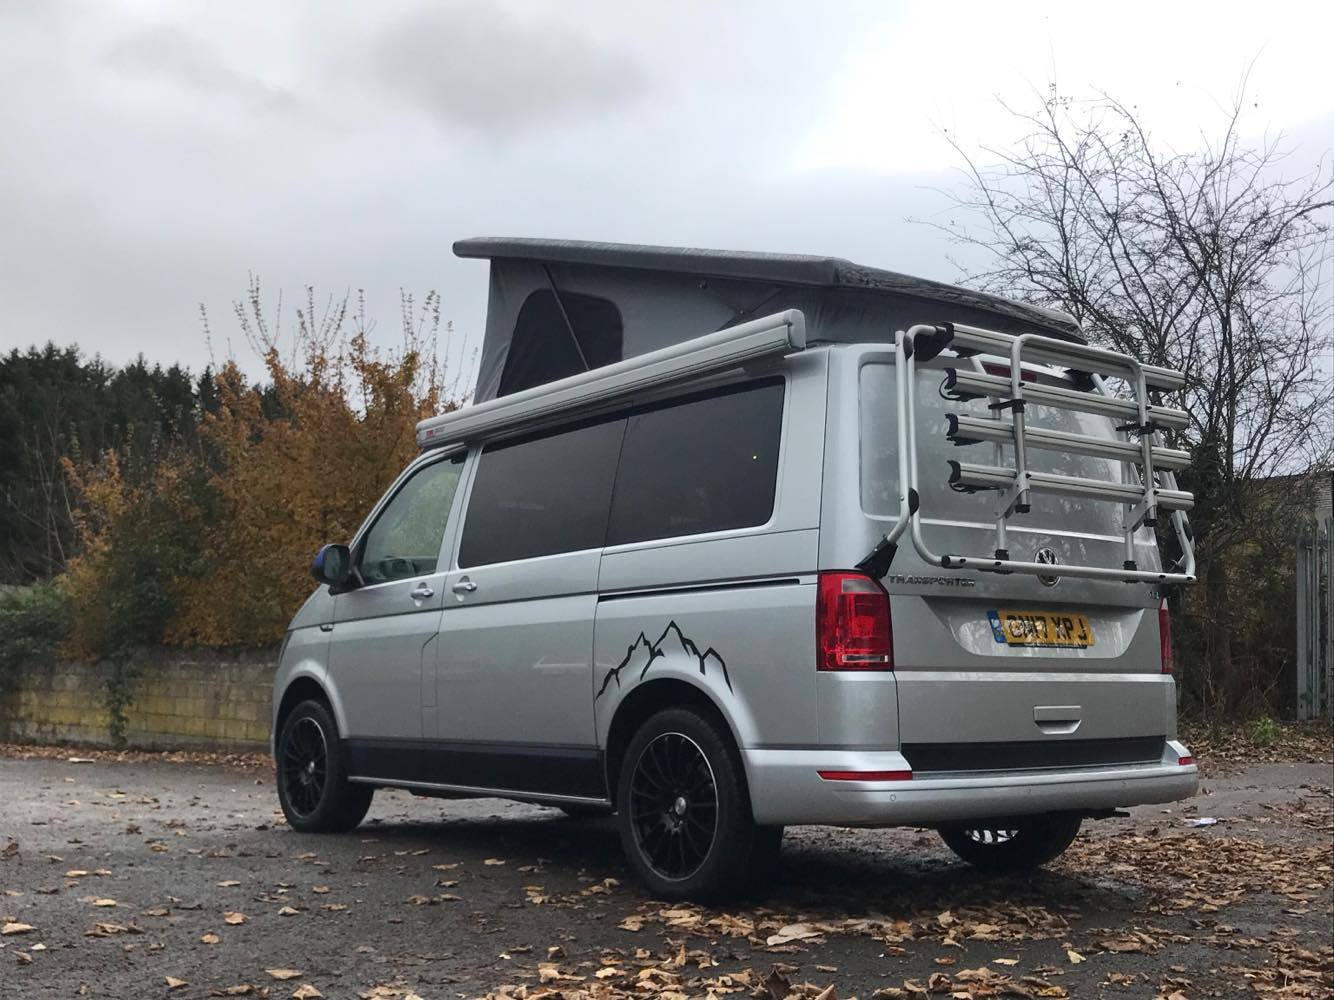 Cannon Camper Conversions | VW T5 Archives - Cannon Camper Conversions